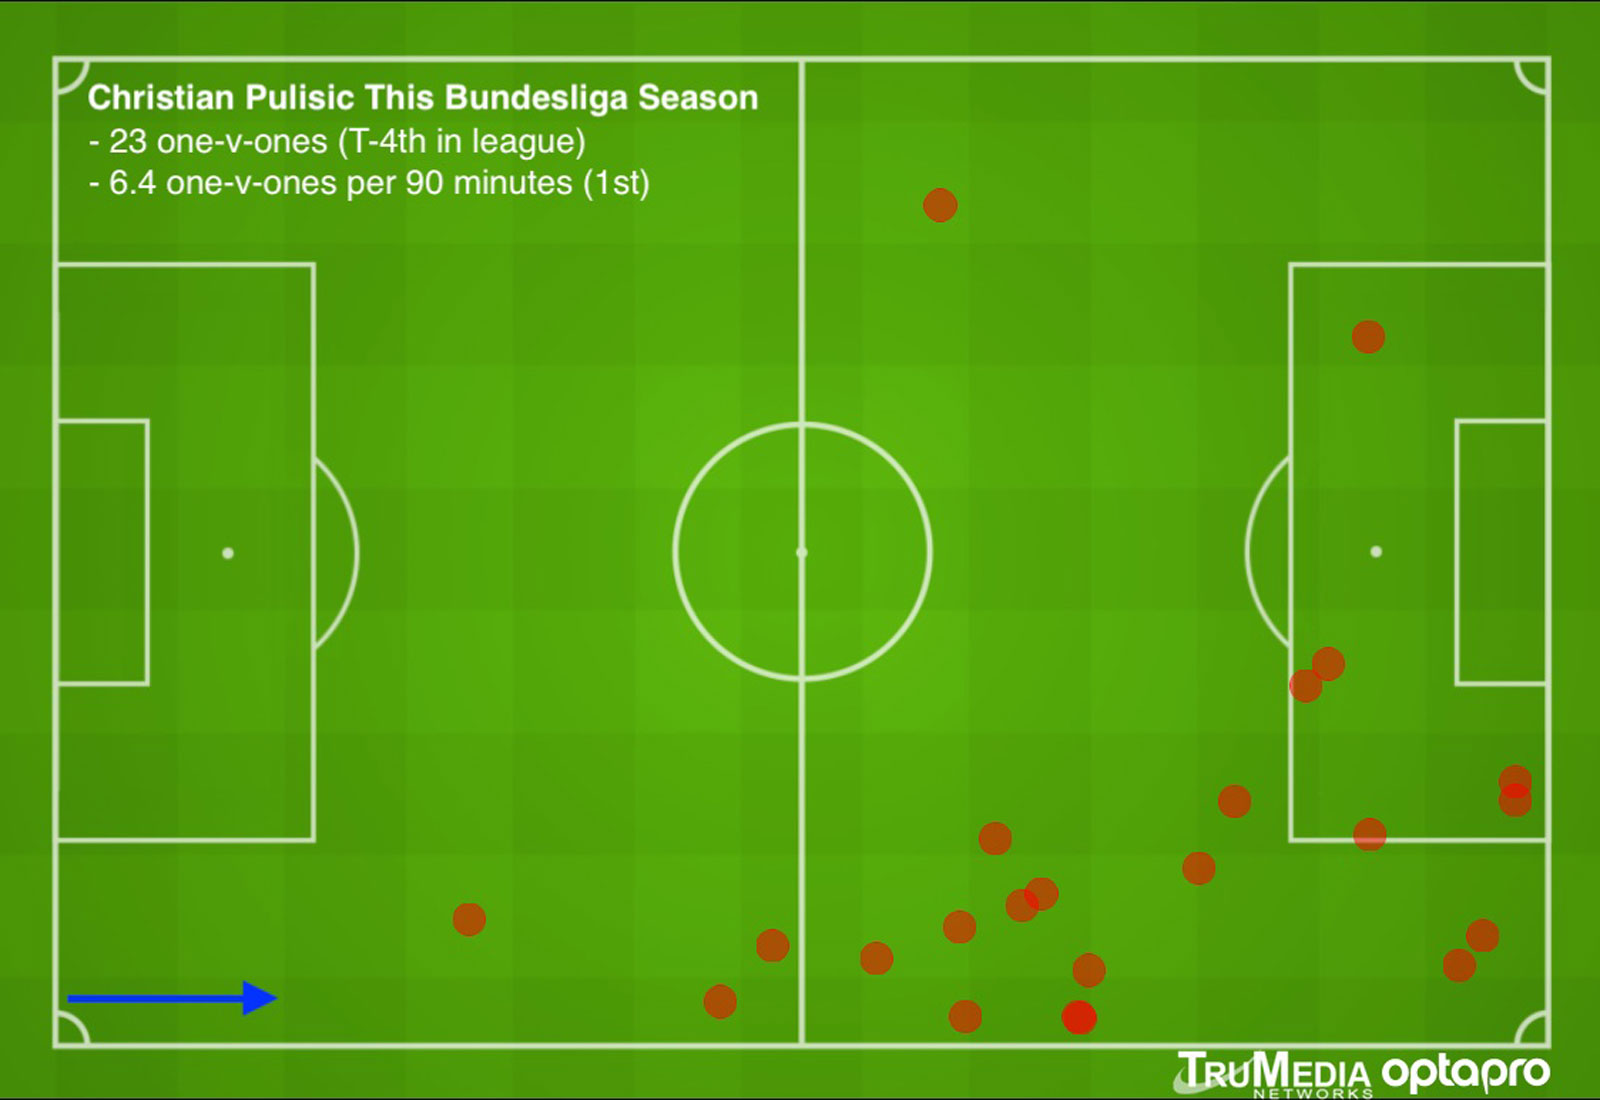 Christian Pulisic is among the best at the Bundesliga in taking on defenders